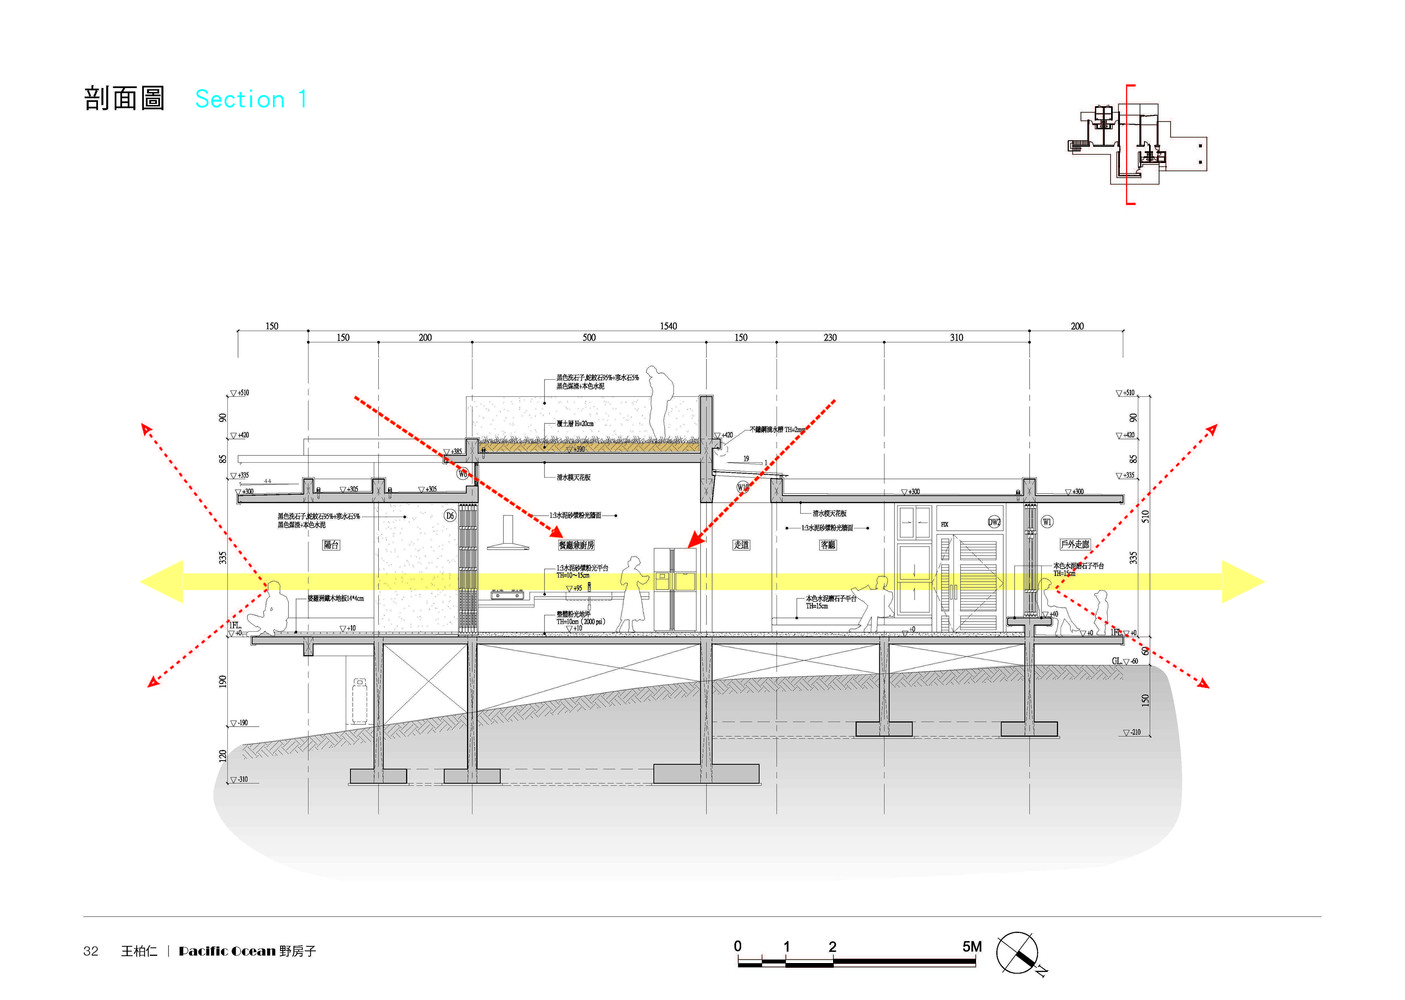 hight resolution of mallory unilite ballast resistor wiring diagram wiring diagram mallory promaster coil wiring diagram mallory unilite ballast